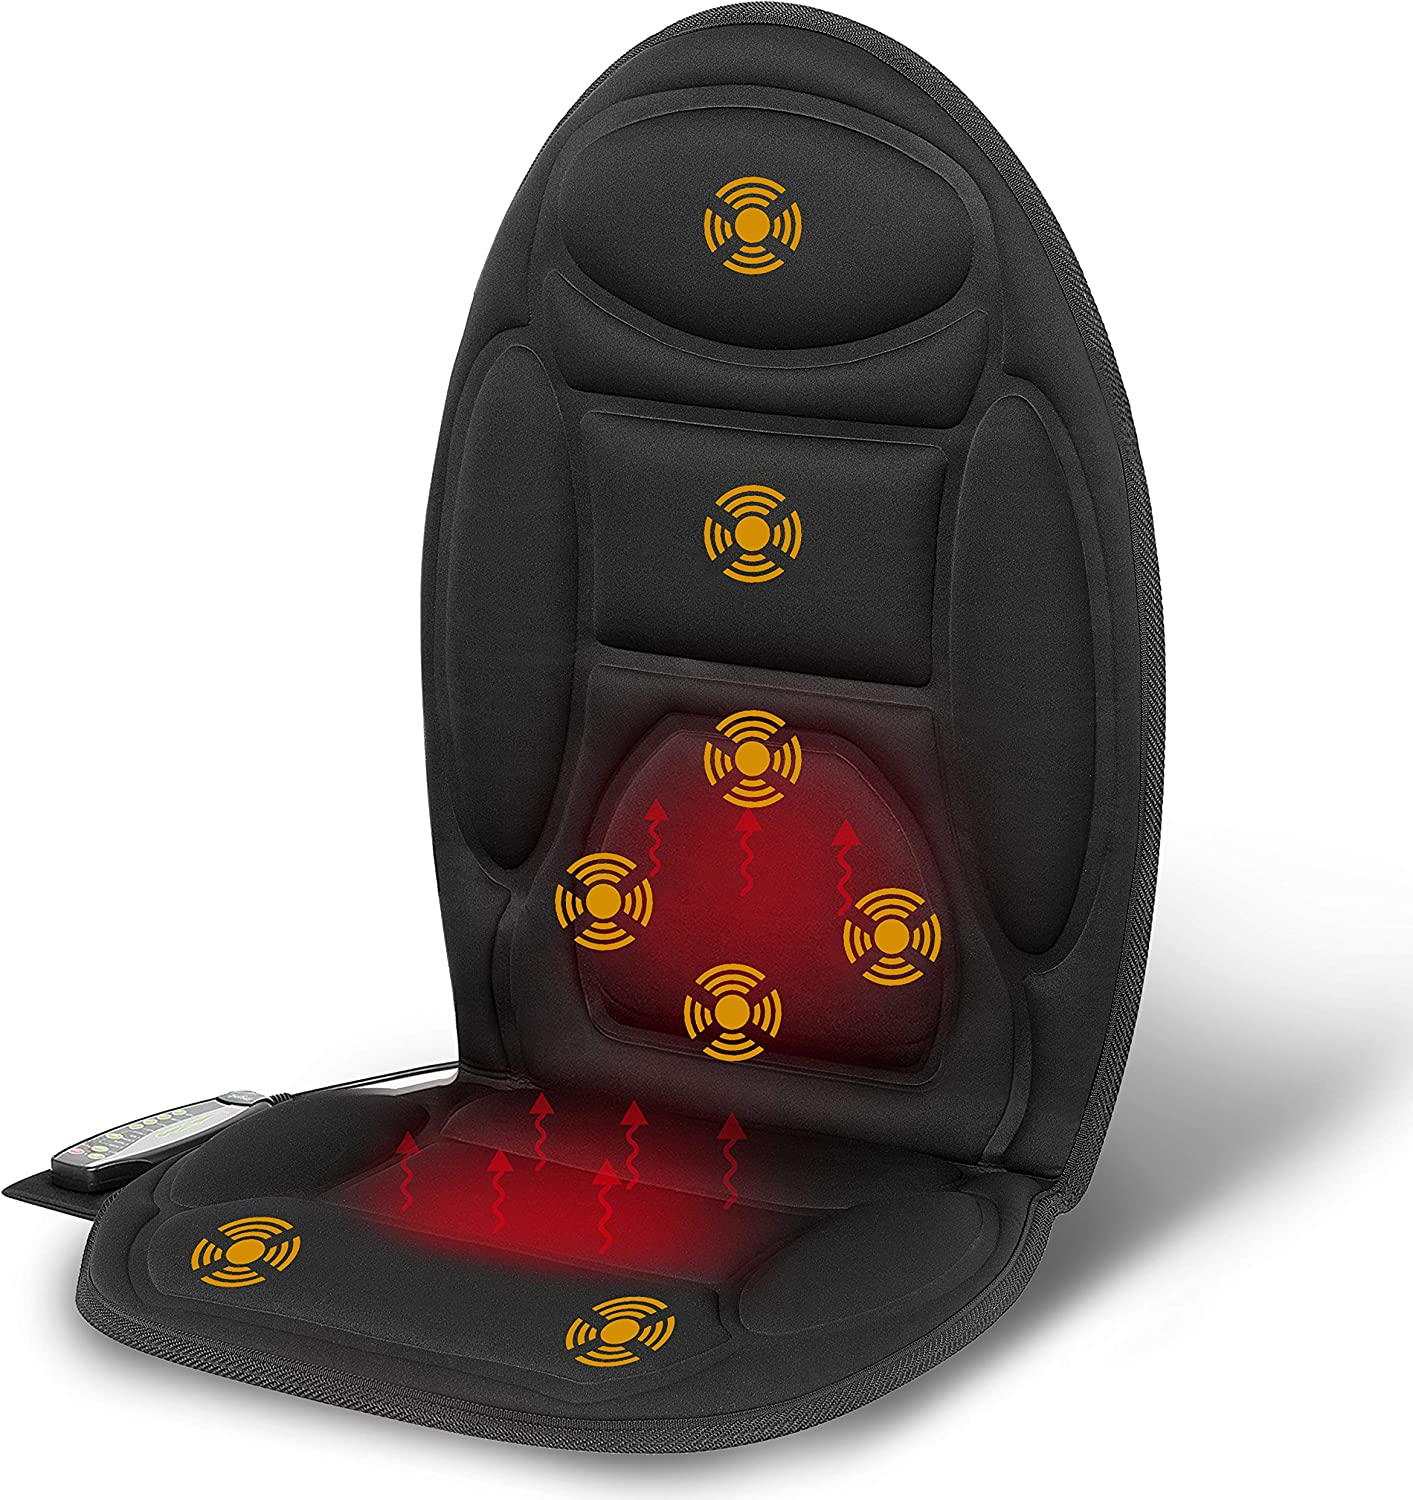 Mynt Vibrating Massage Seat Cushion: Back Massage with Fast Heating, 8 Vibration Massage Nodes Massage Chair Pad for Home Office Chair